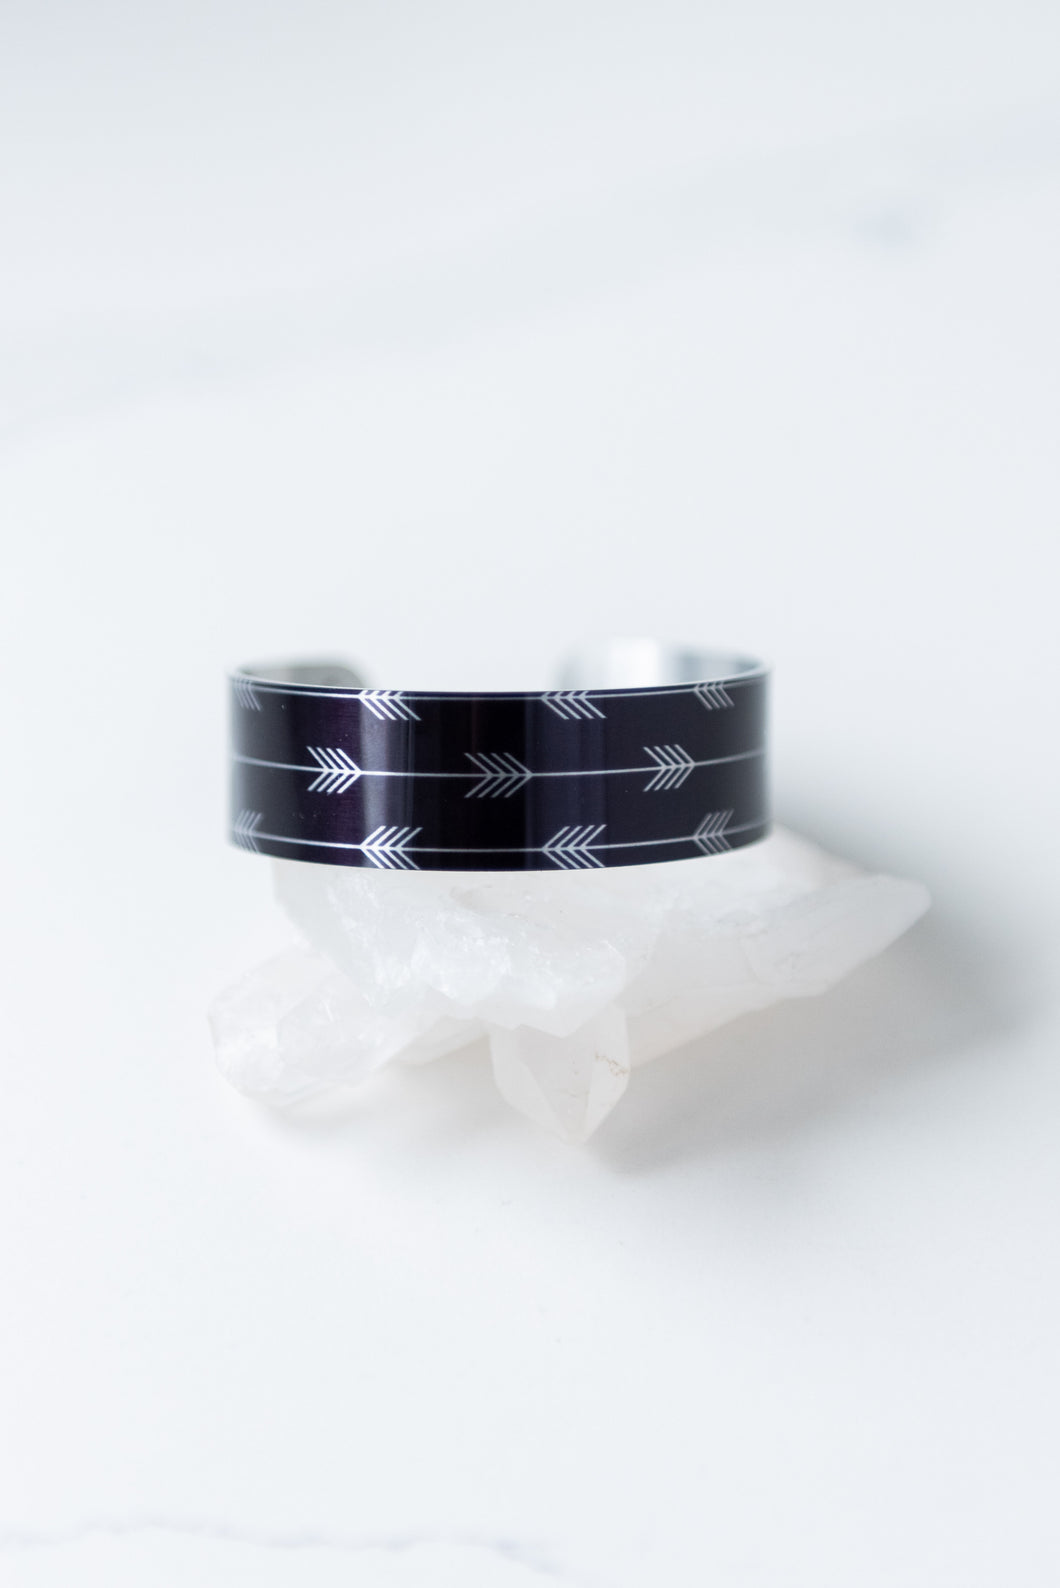 NEW! Shot in the Dark Small Cuff